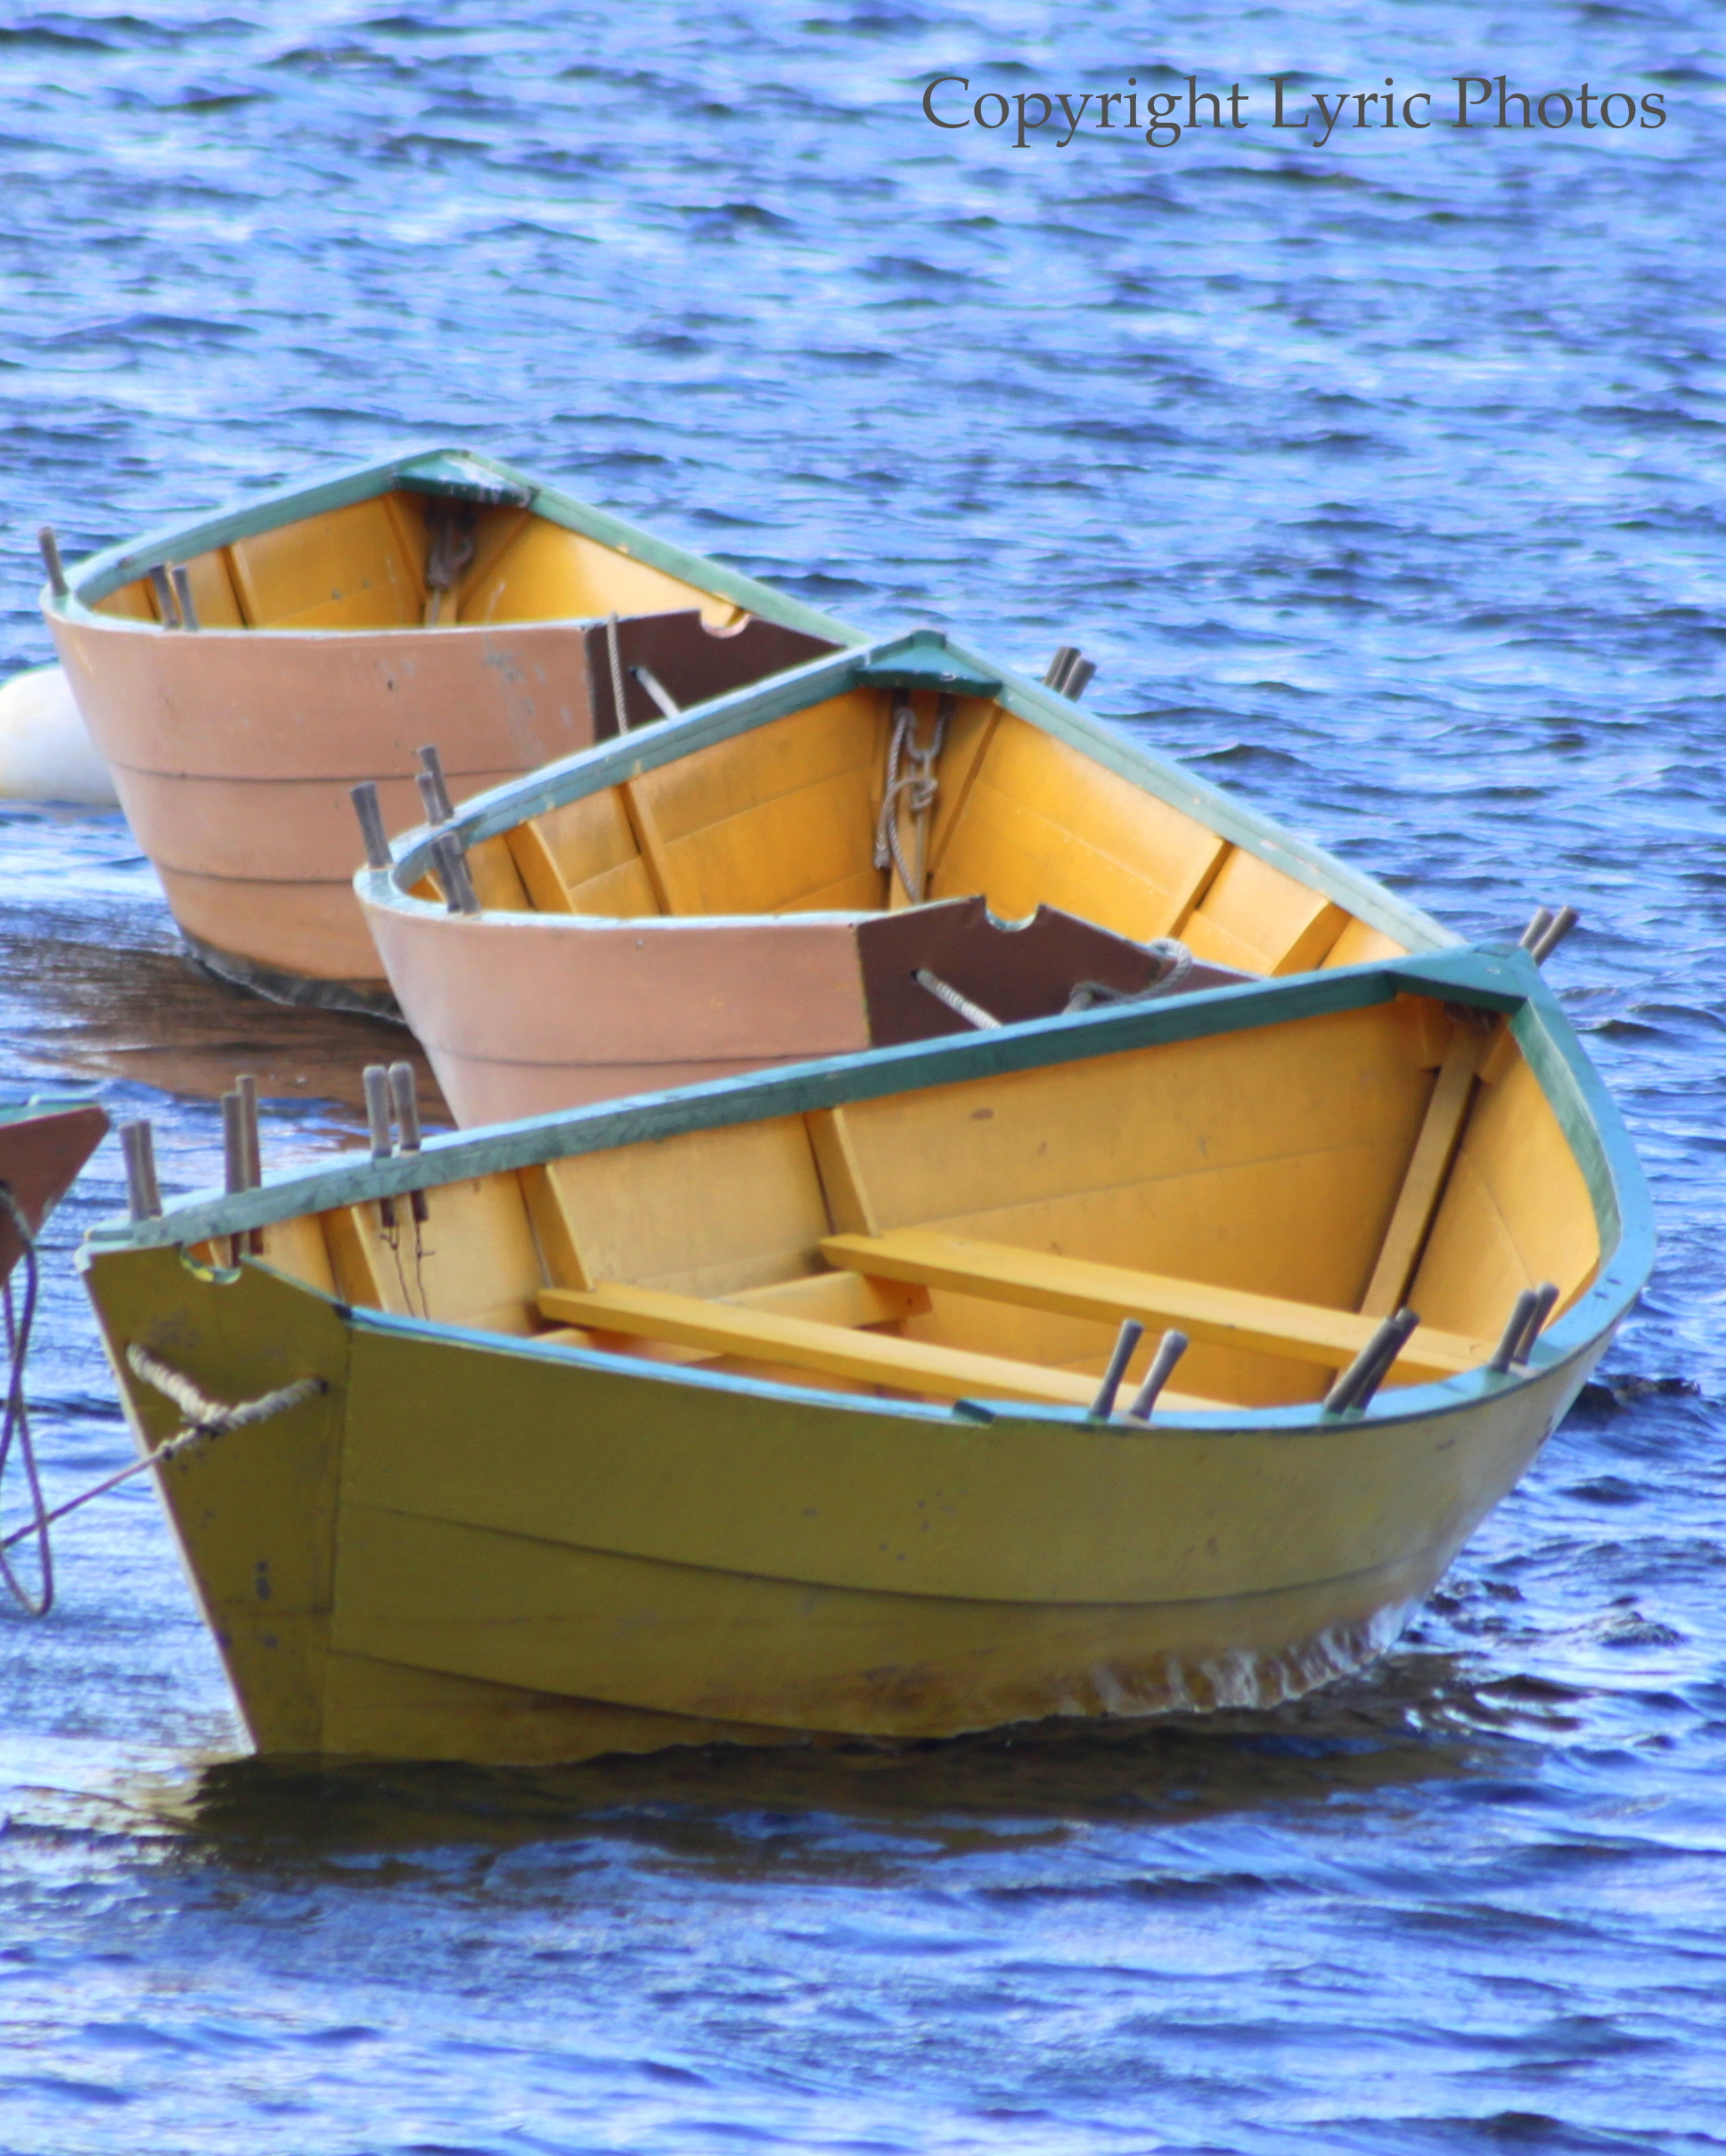 Dories Boats New England Photographs